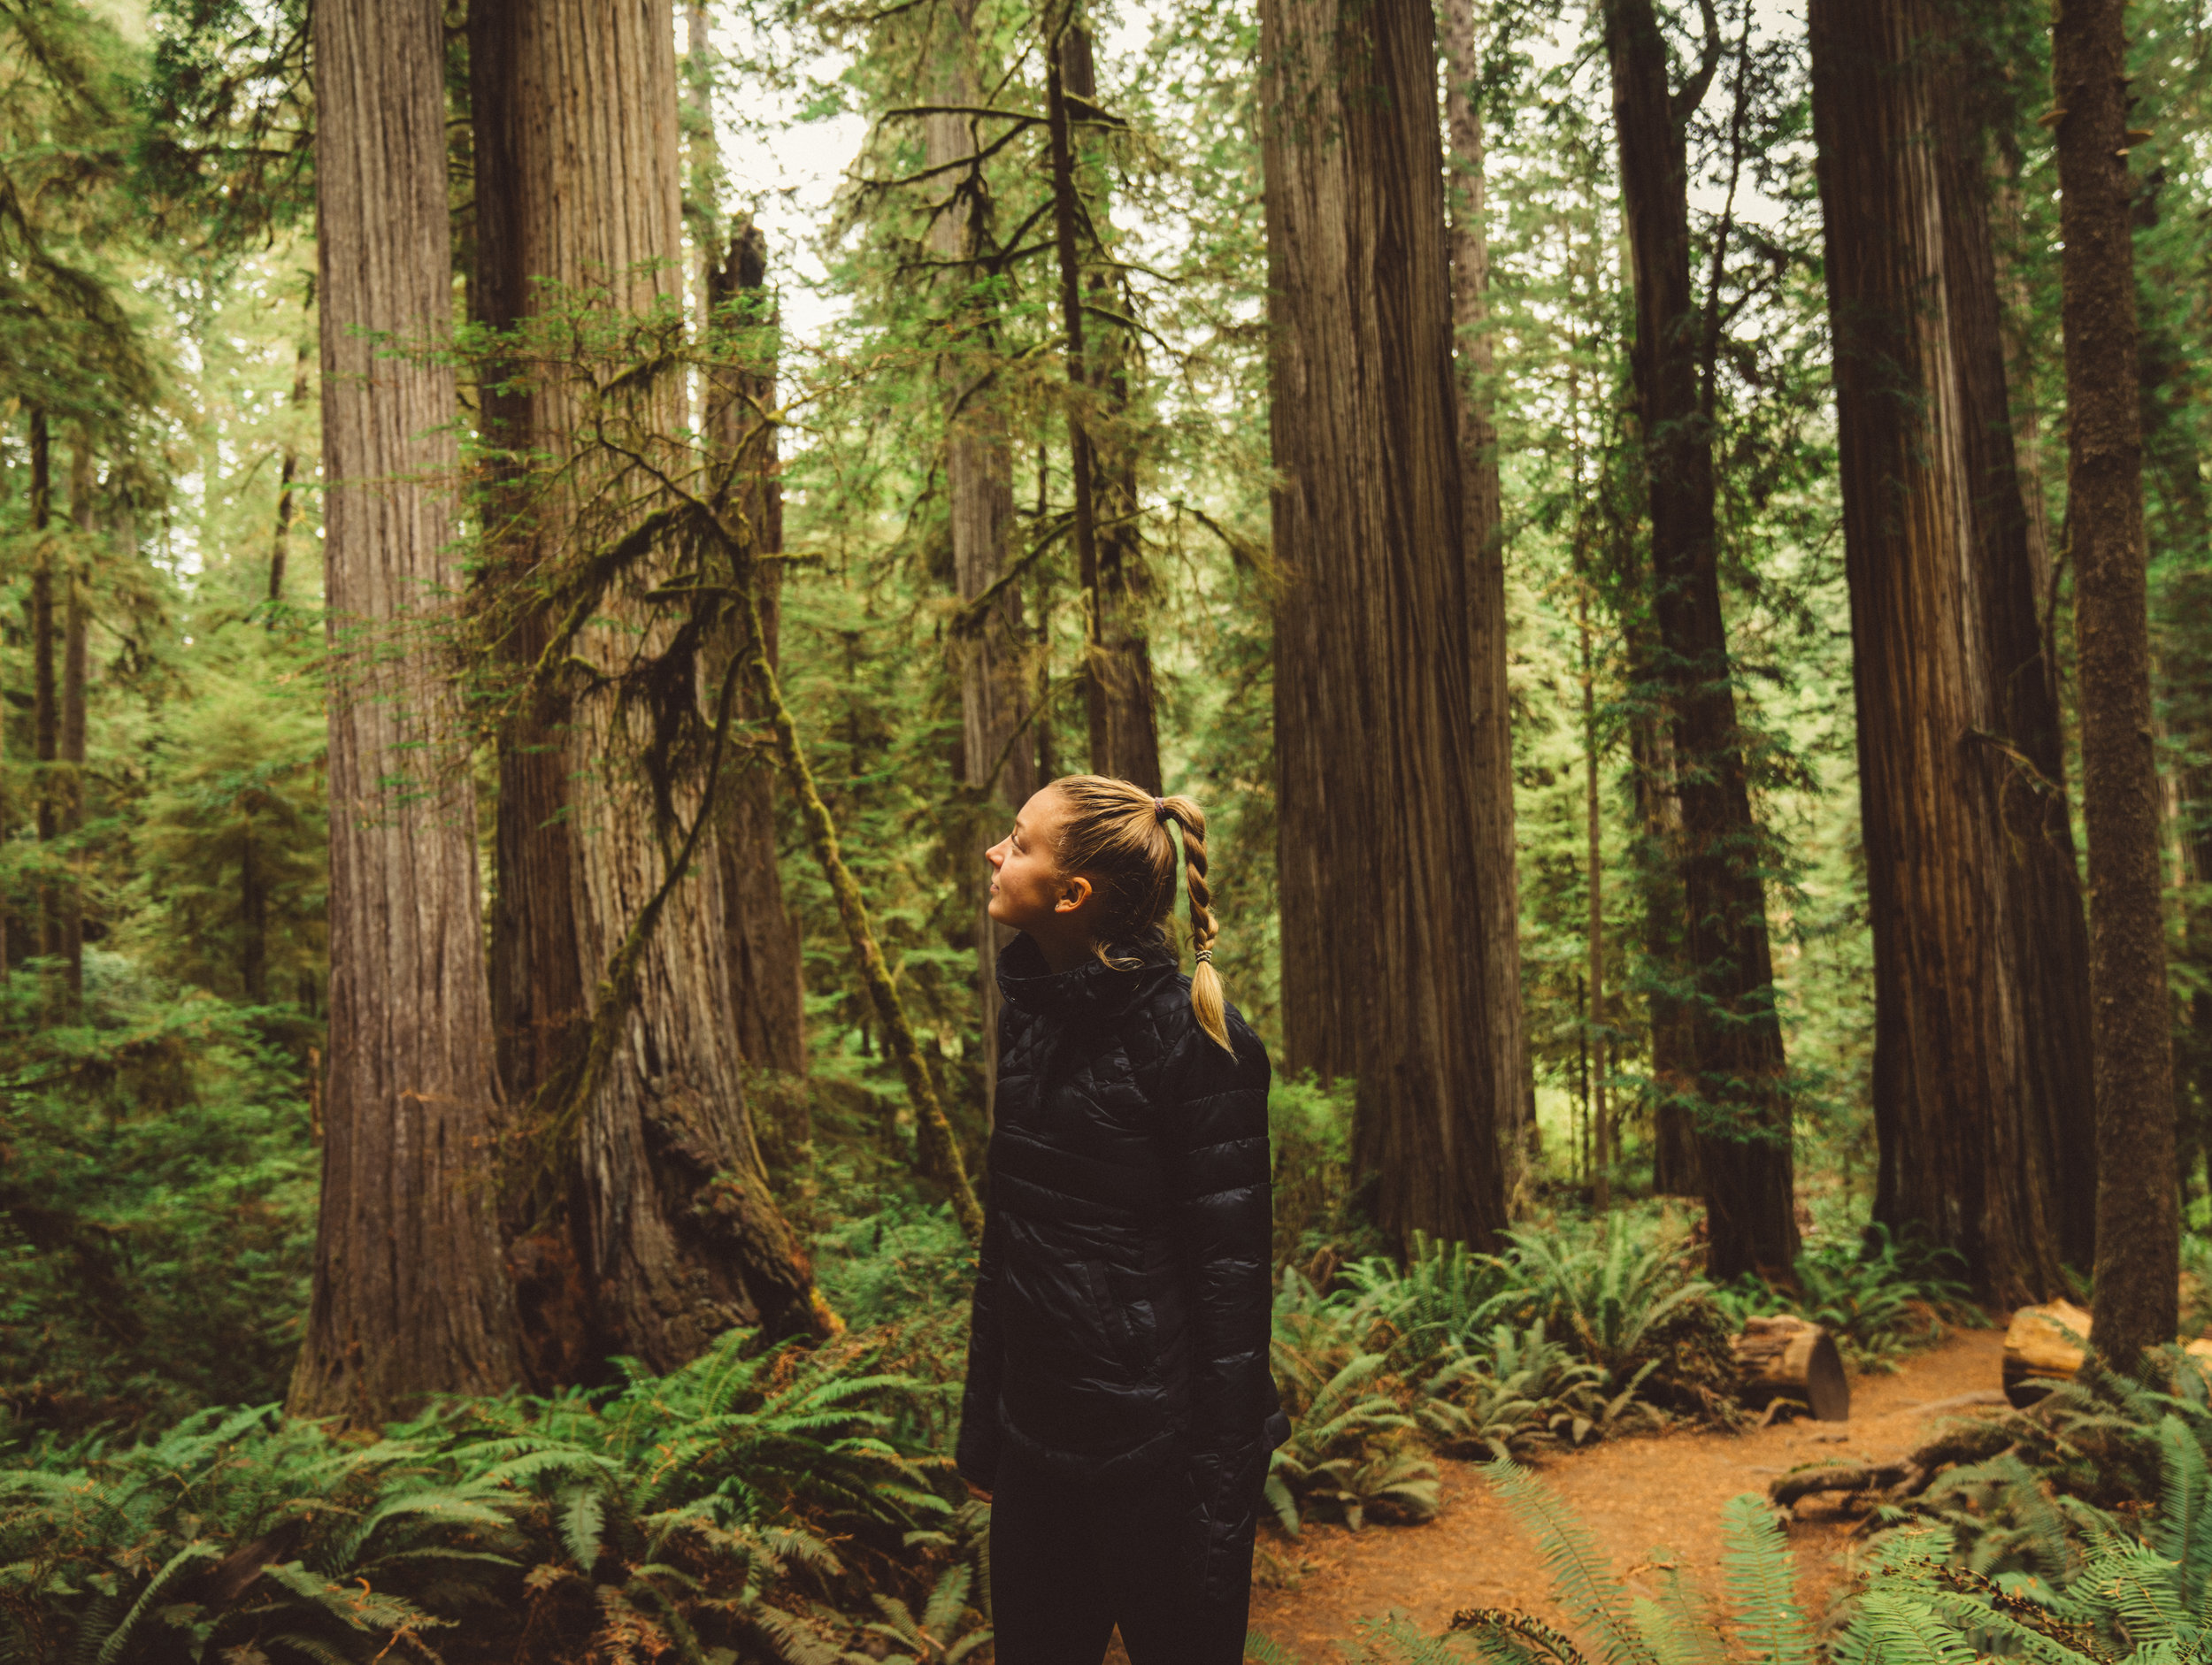 Danielle absorbing the Redwoods at Jedediah Smith Redwoods State Park.